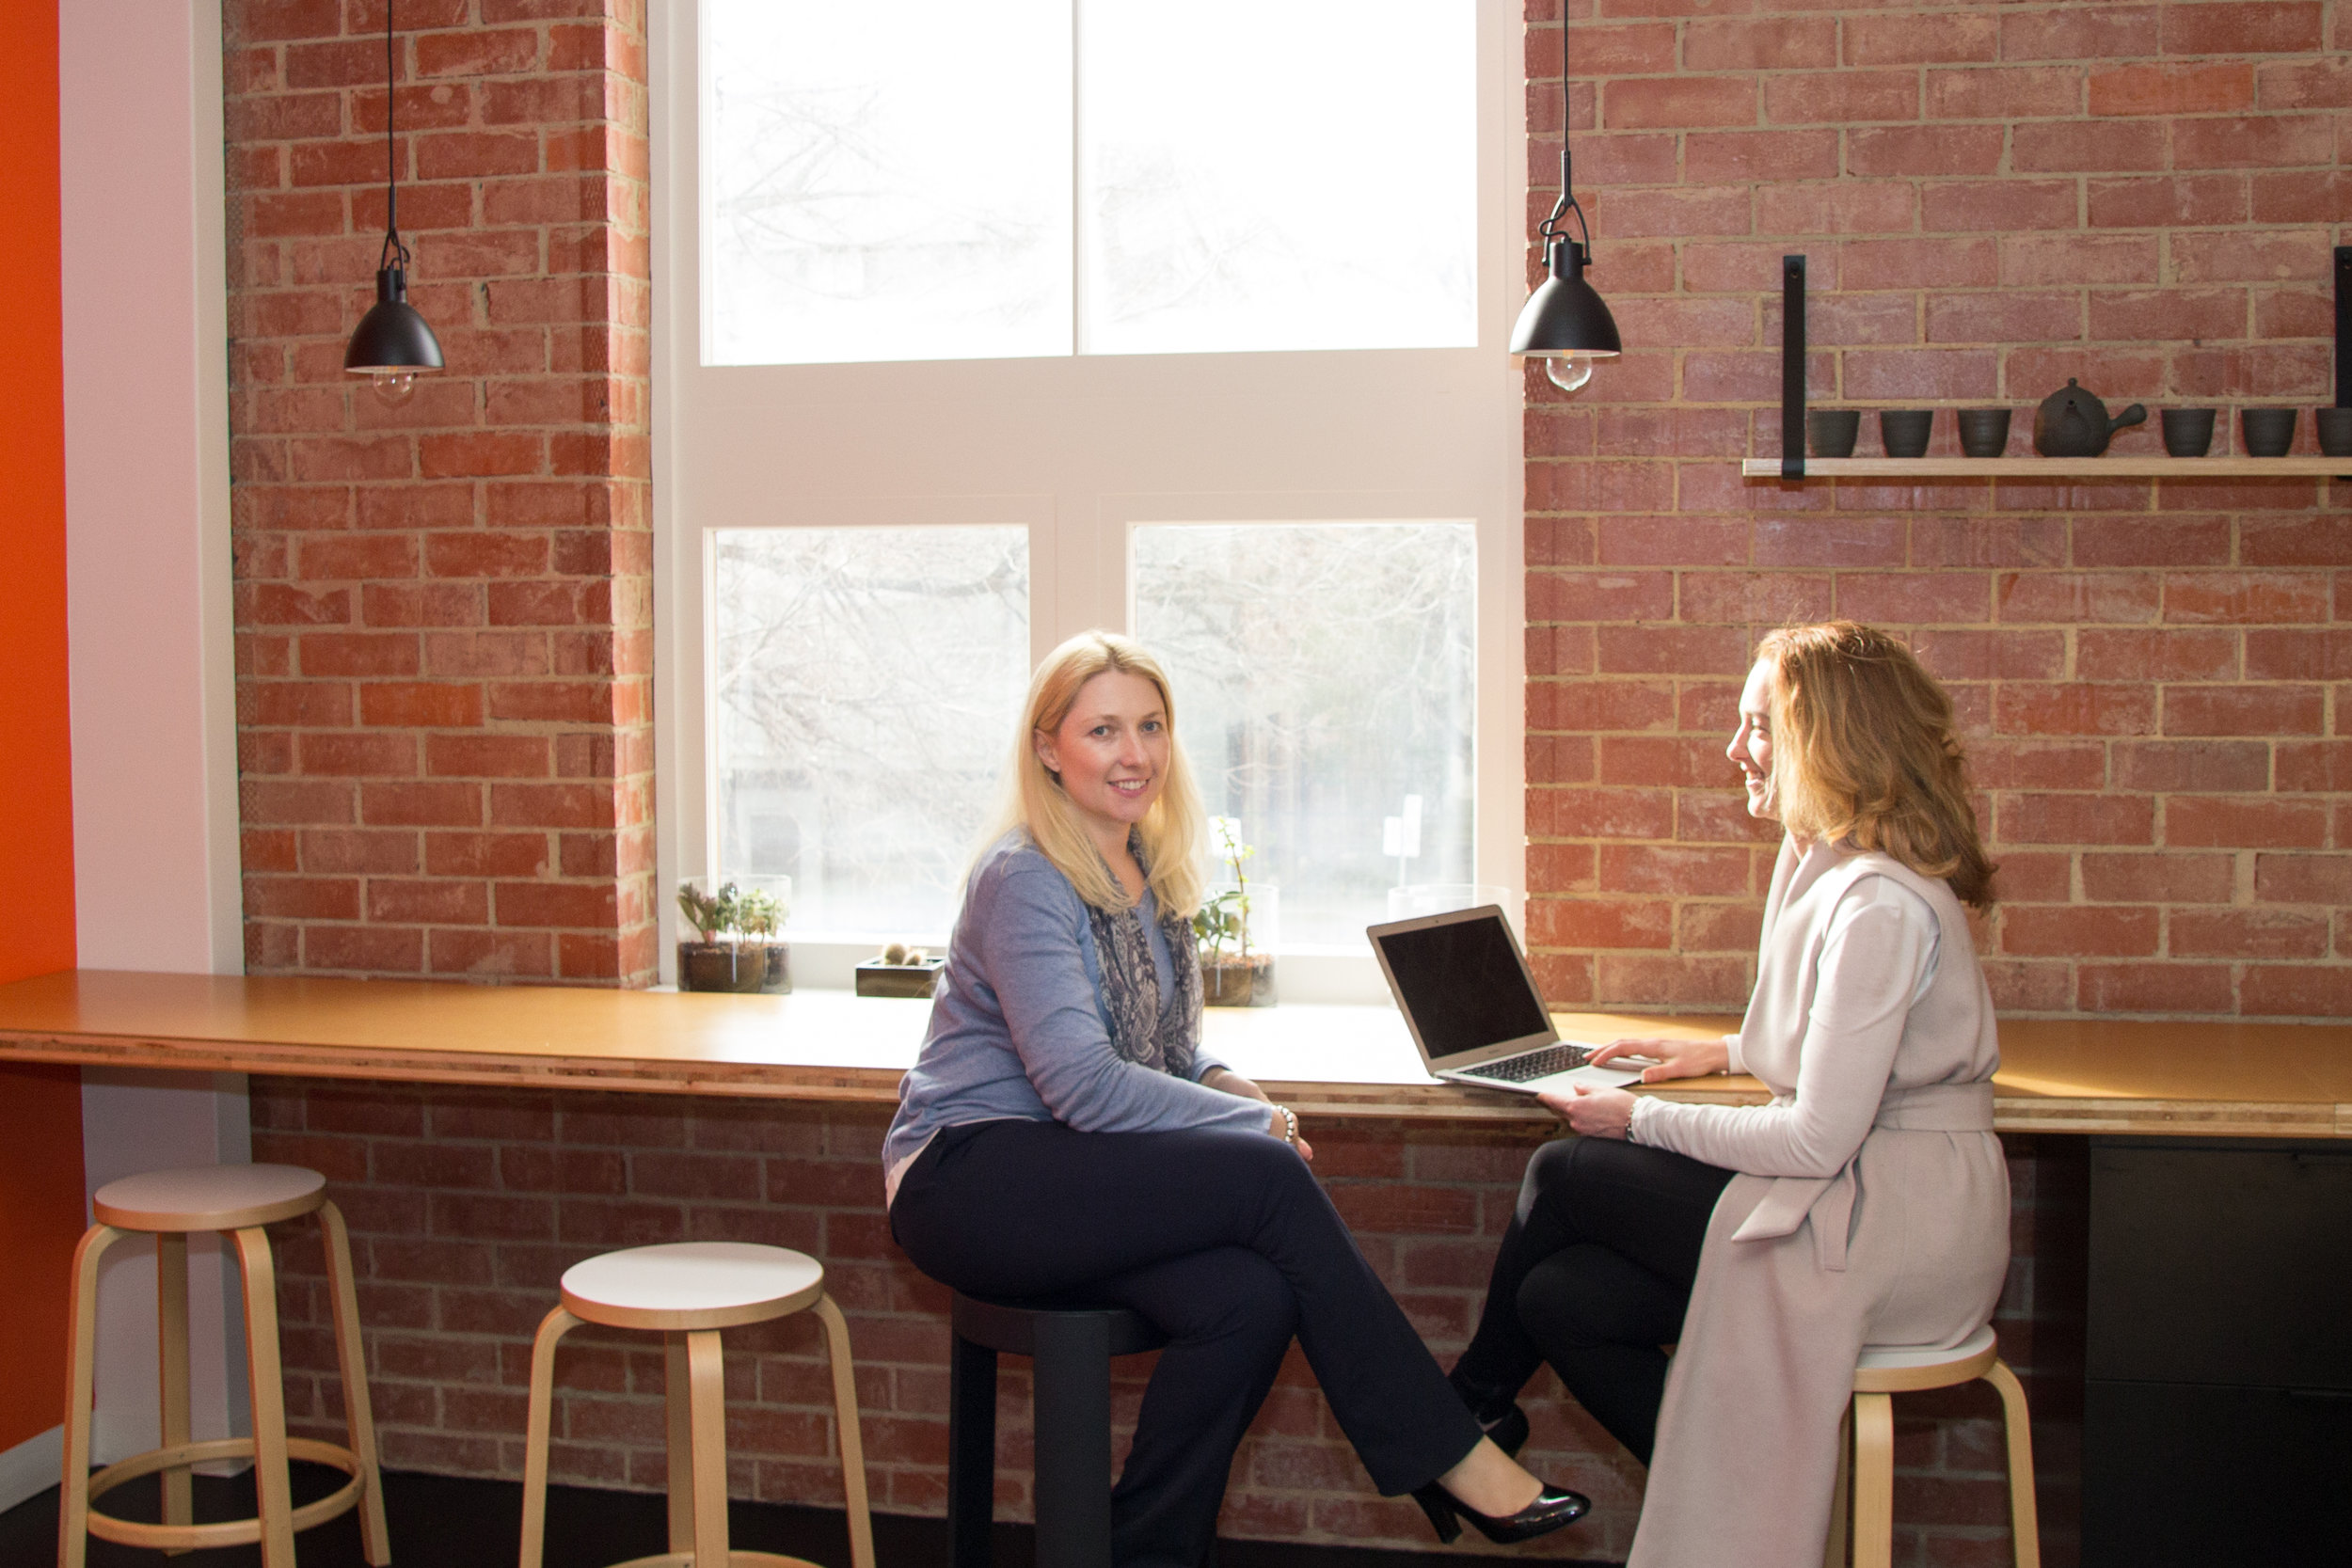 Co- working spacesBenefits?  Challenges? -